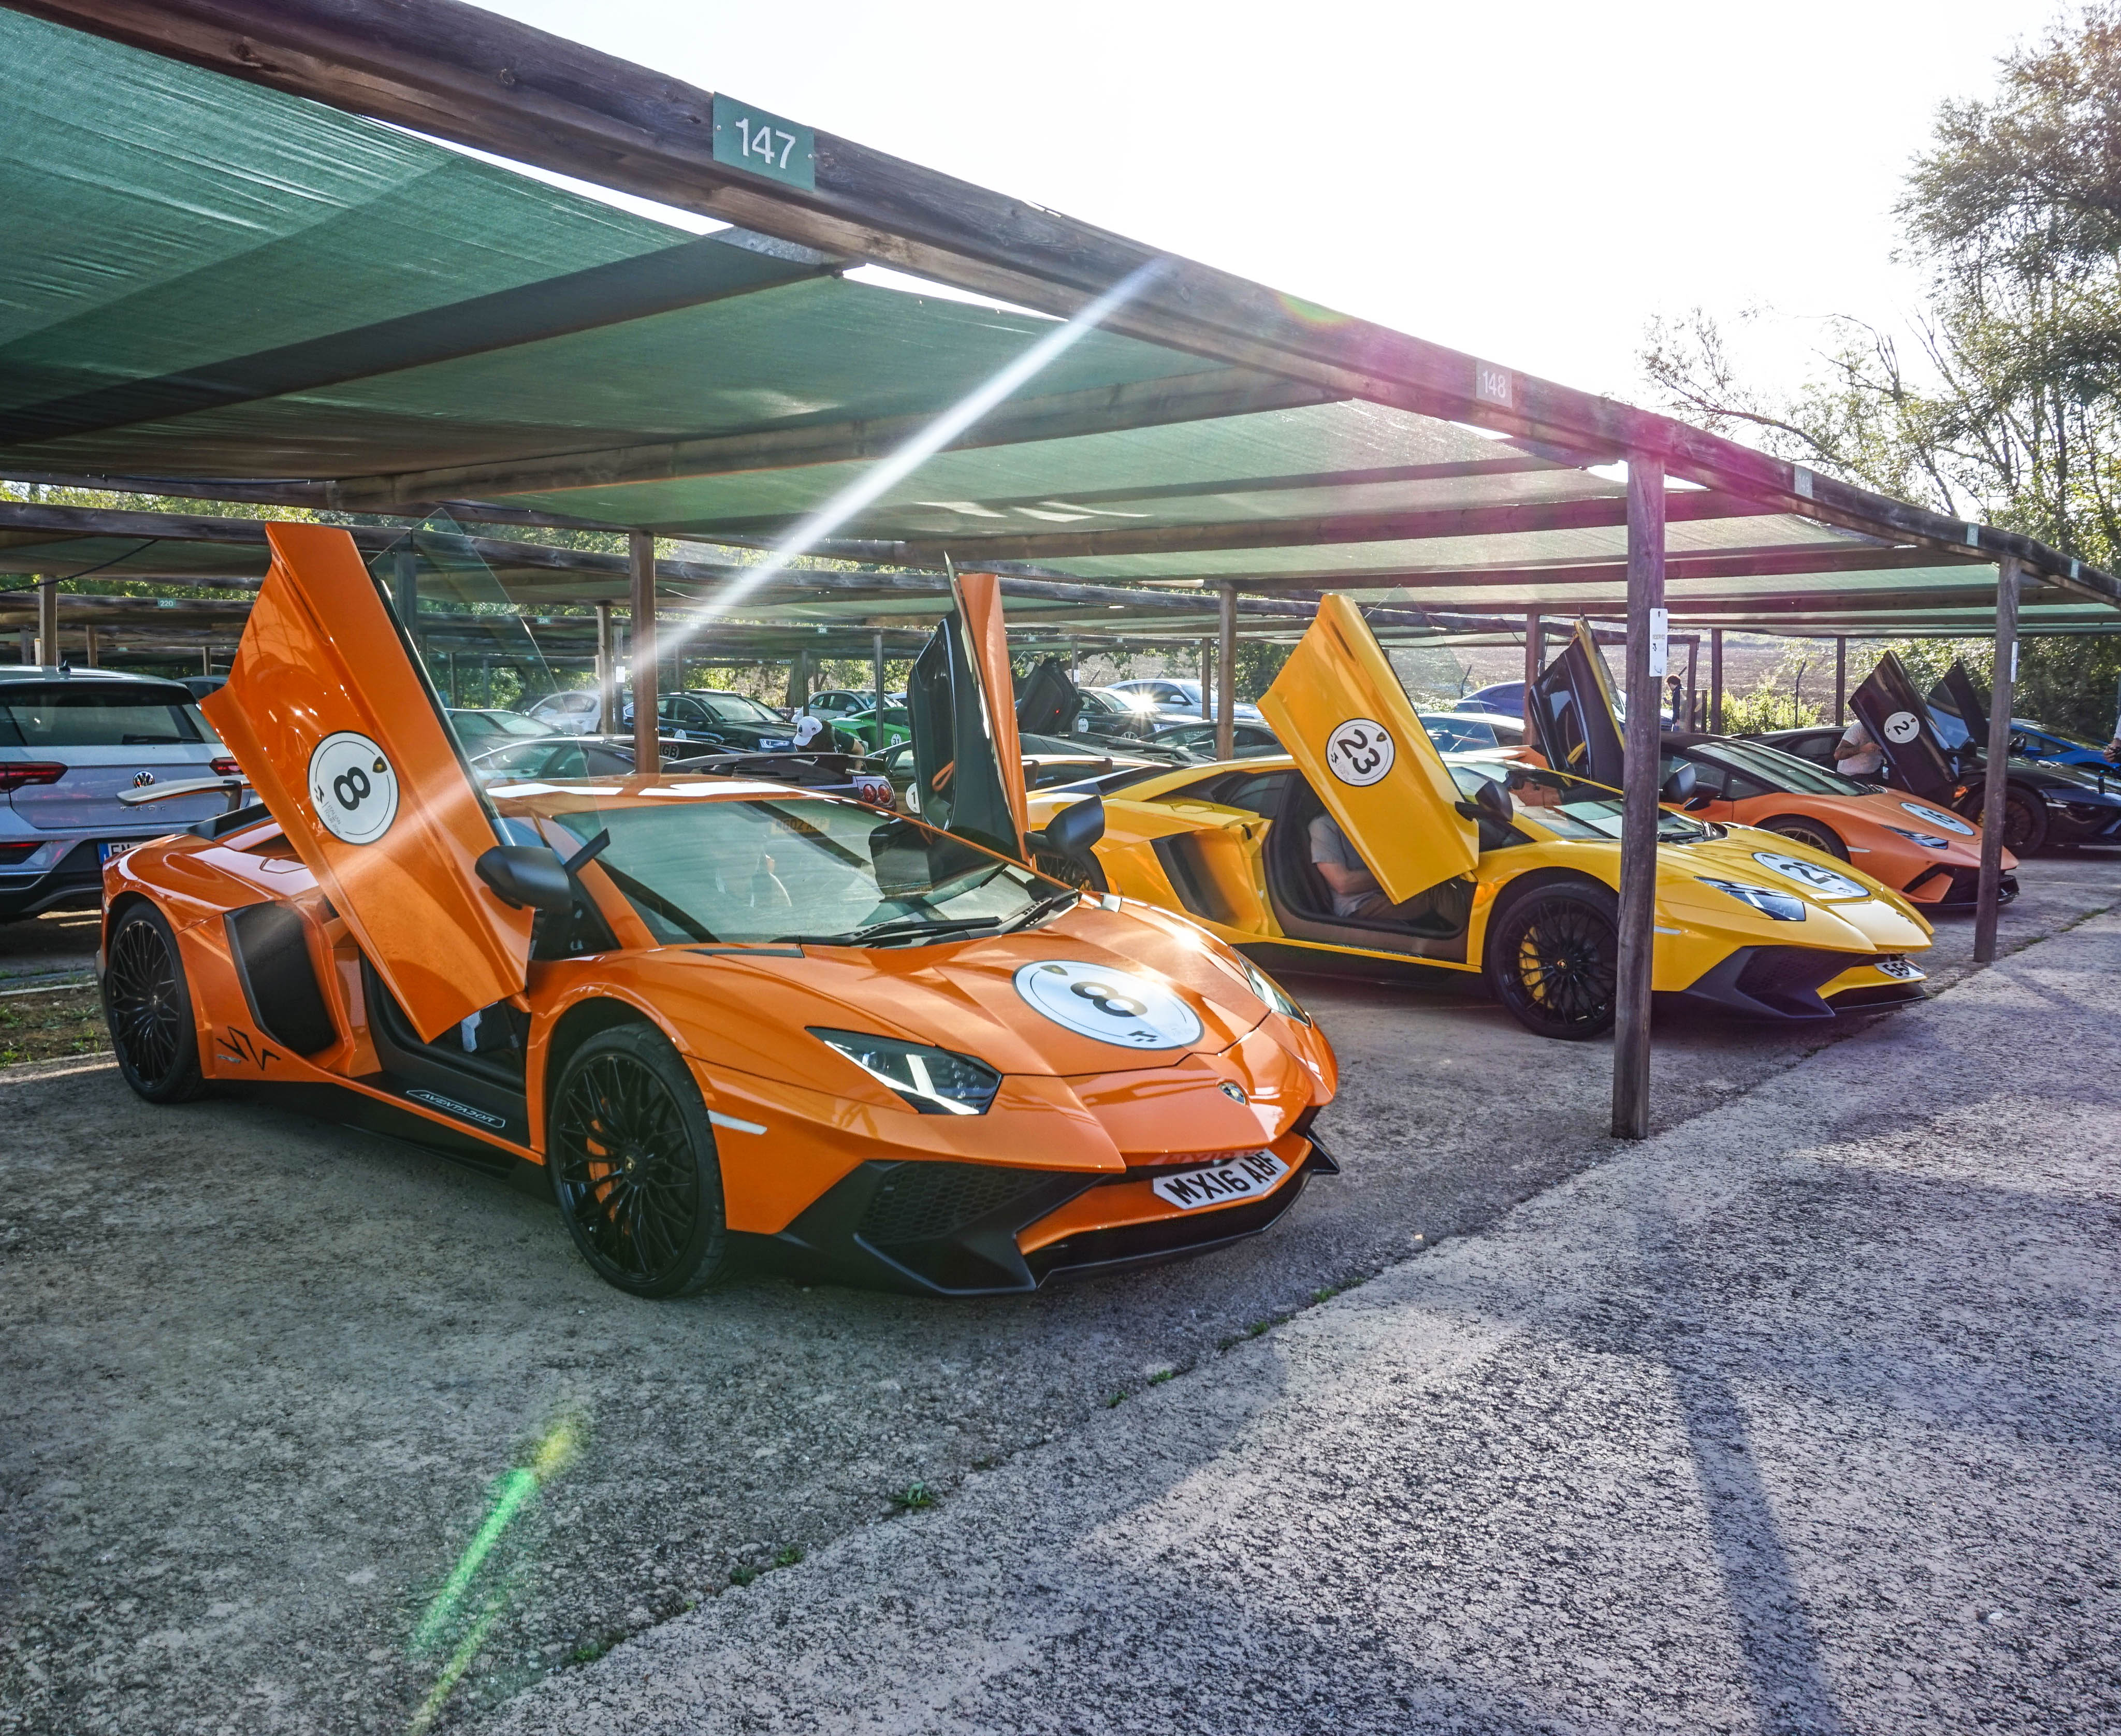 H.R. Owen Lamborghini hosted a collection of customers for a tour of some of Italy's most breath-taking landscapes in celebration of all things Lamborghini